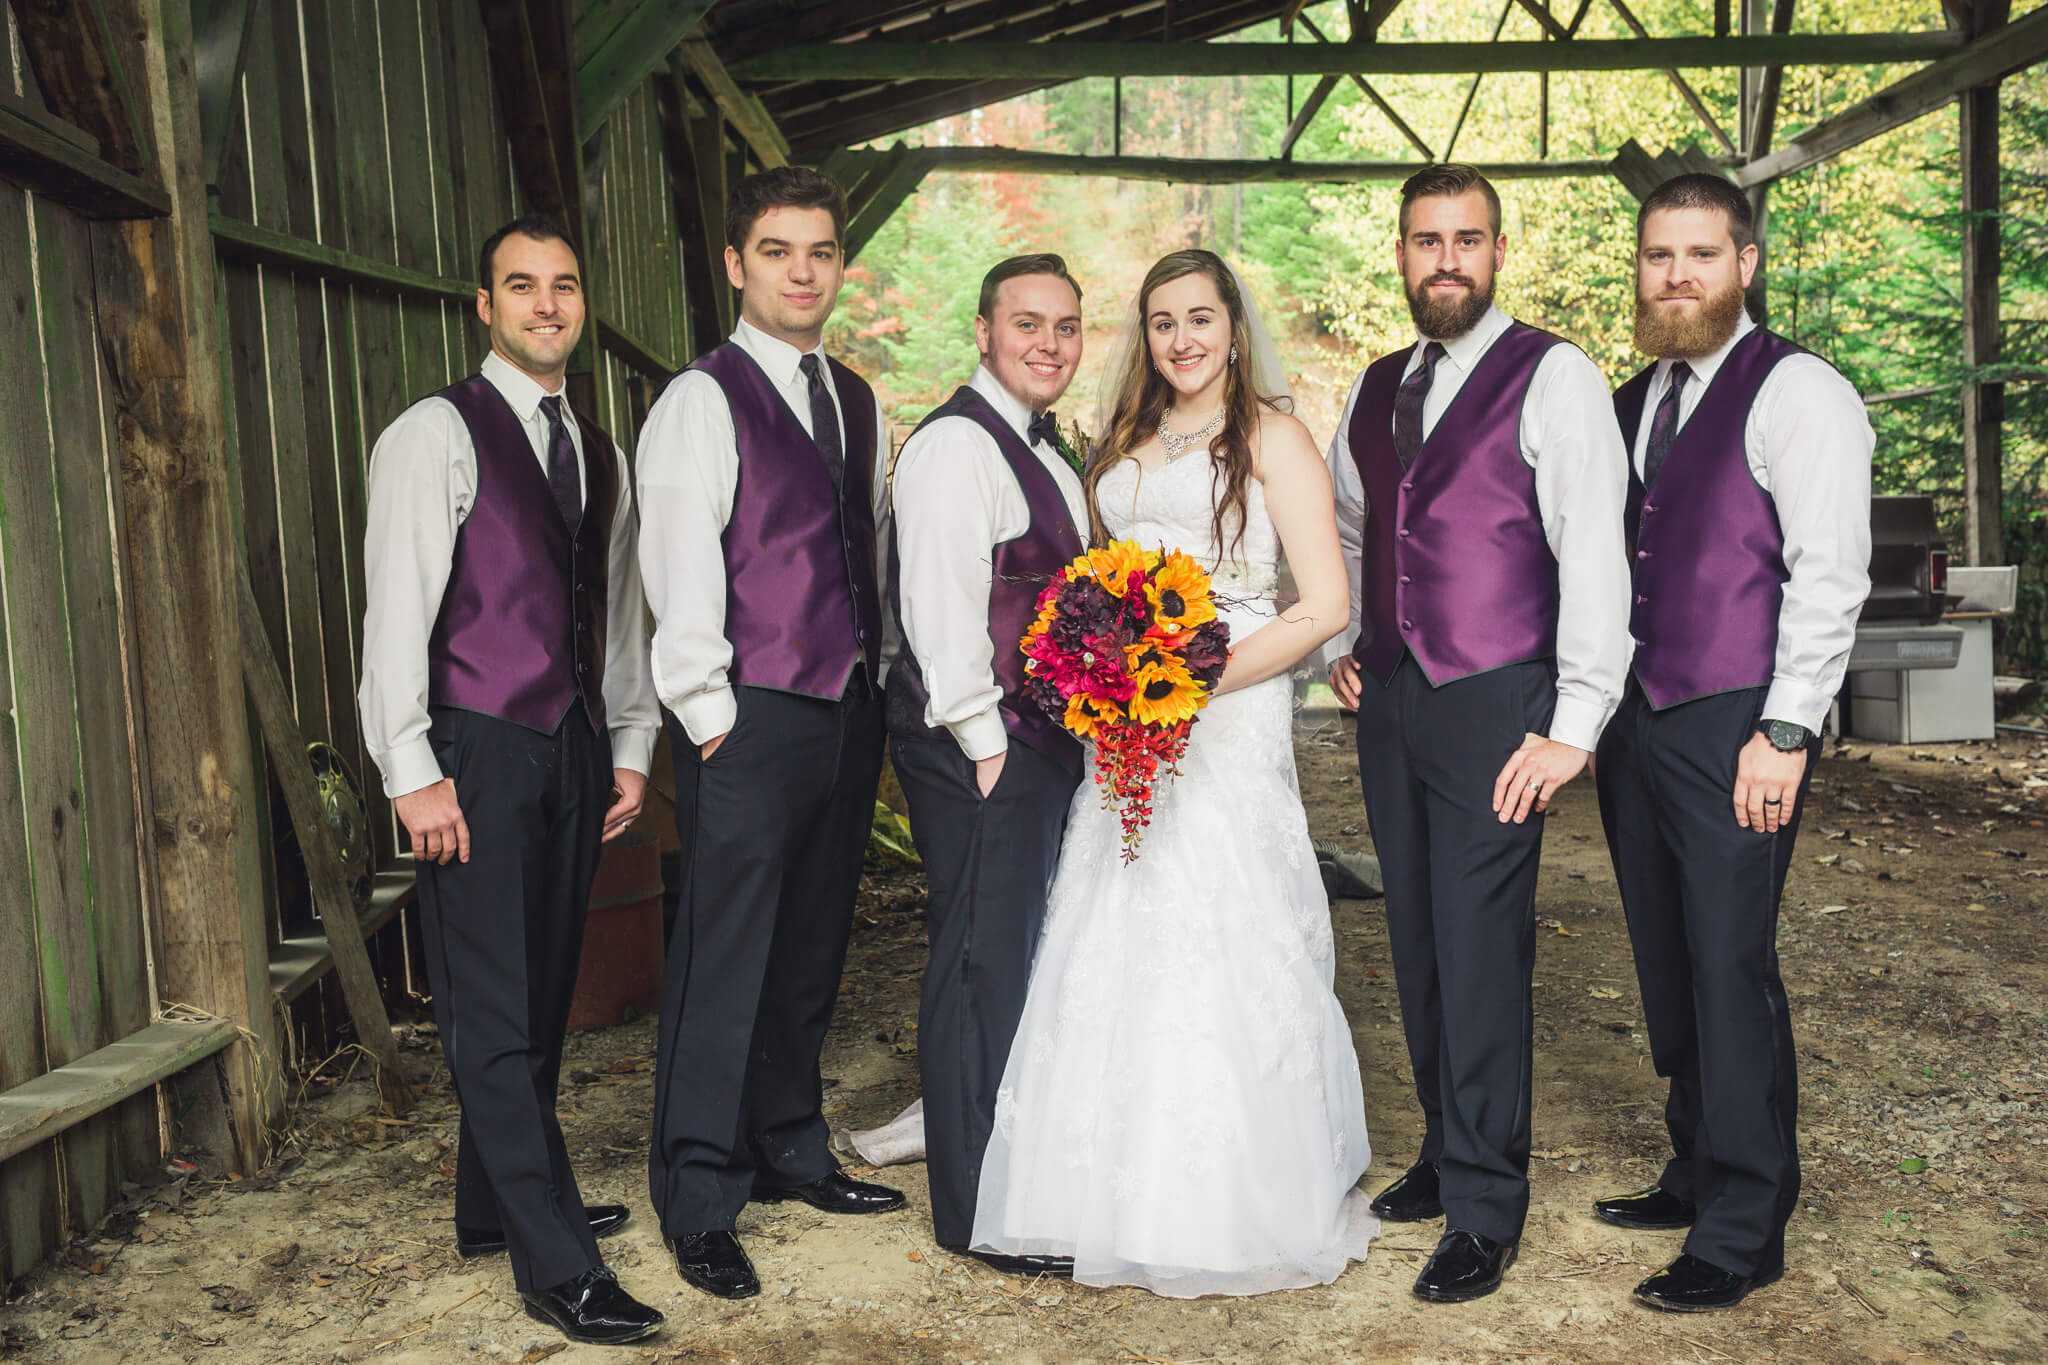 Mitcham's Barn Wedding-94.JPG